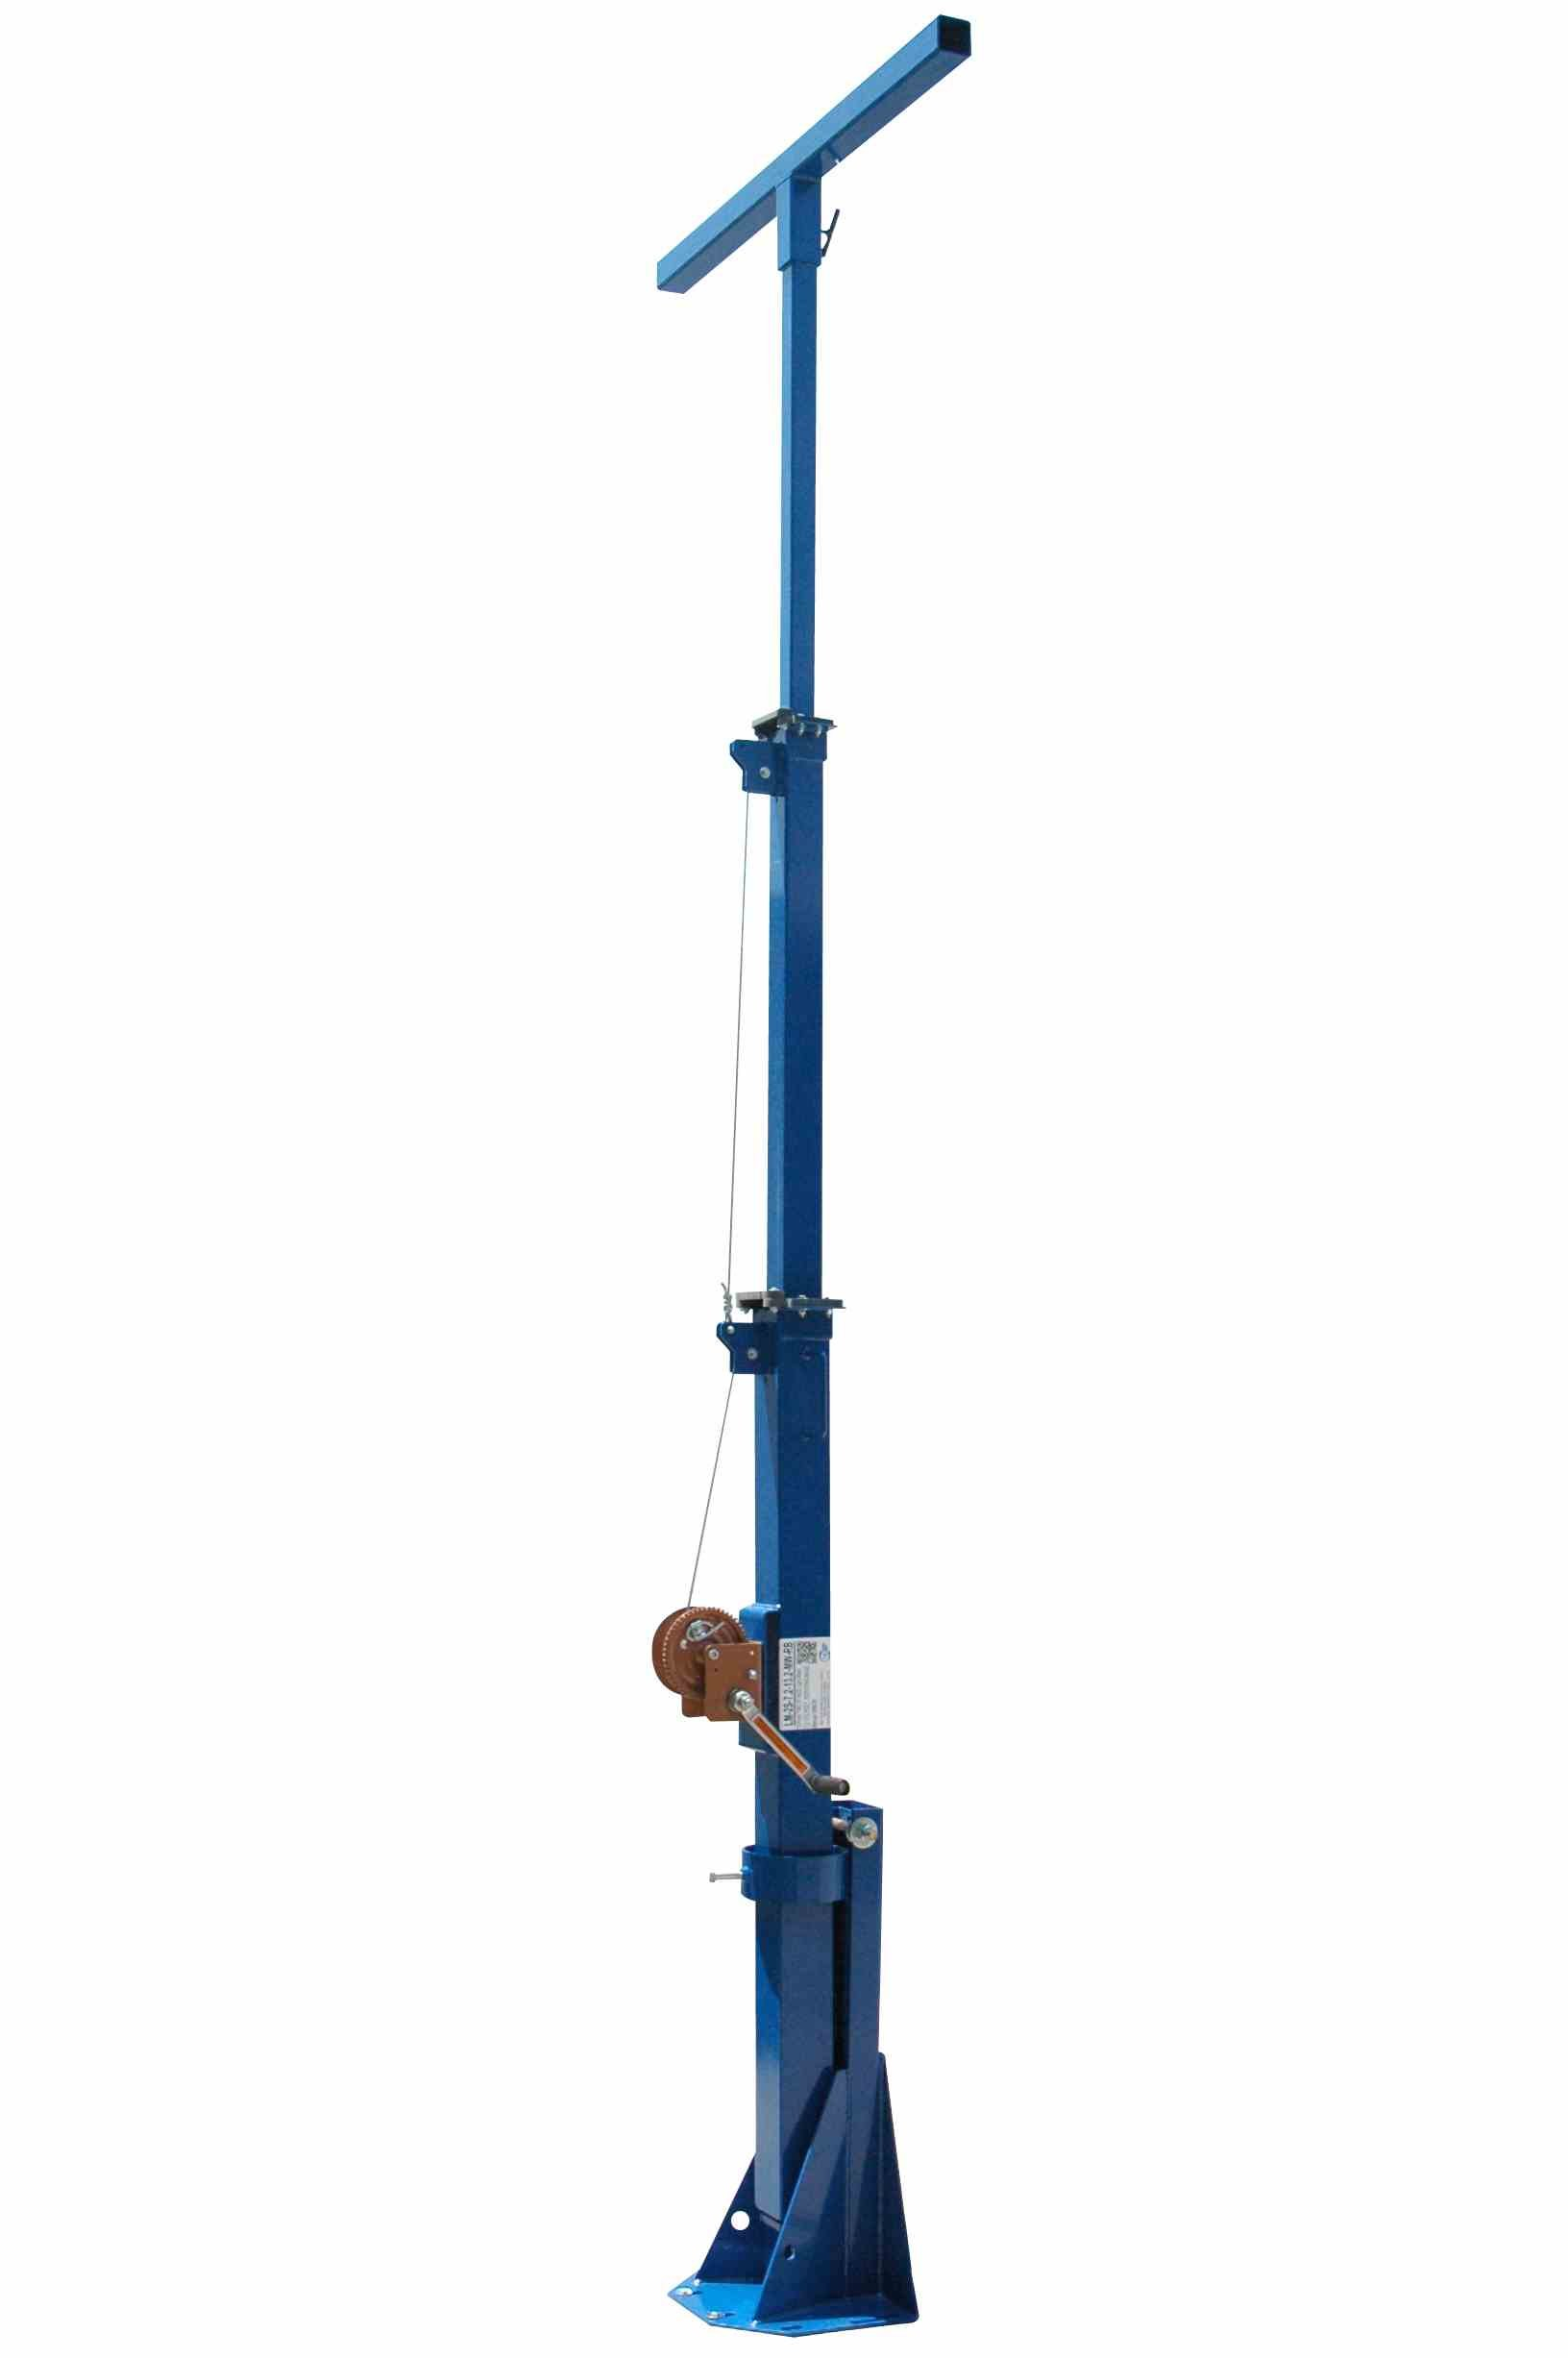 20' Four Stage Telescoping Mini Light Mast - 8' to 20' Fold Over Light Boom - 150 MPH Wind Rating